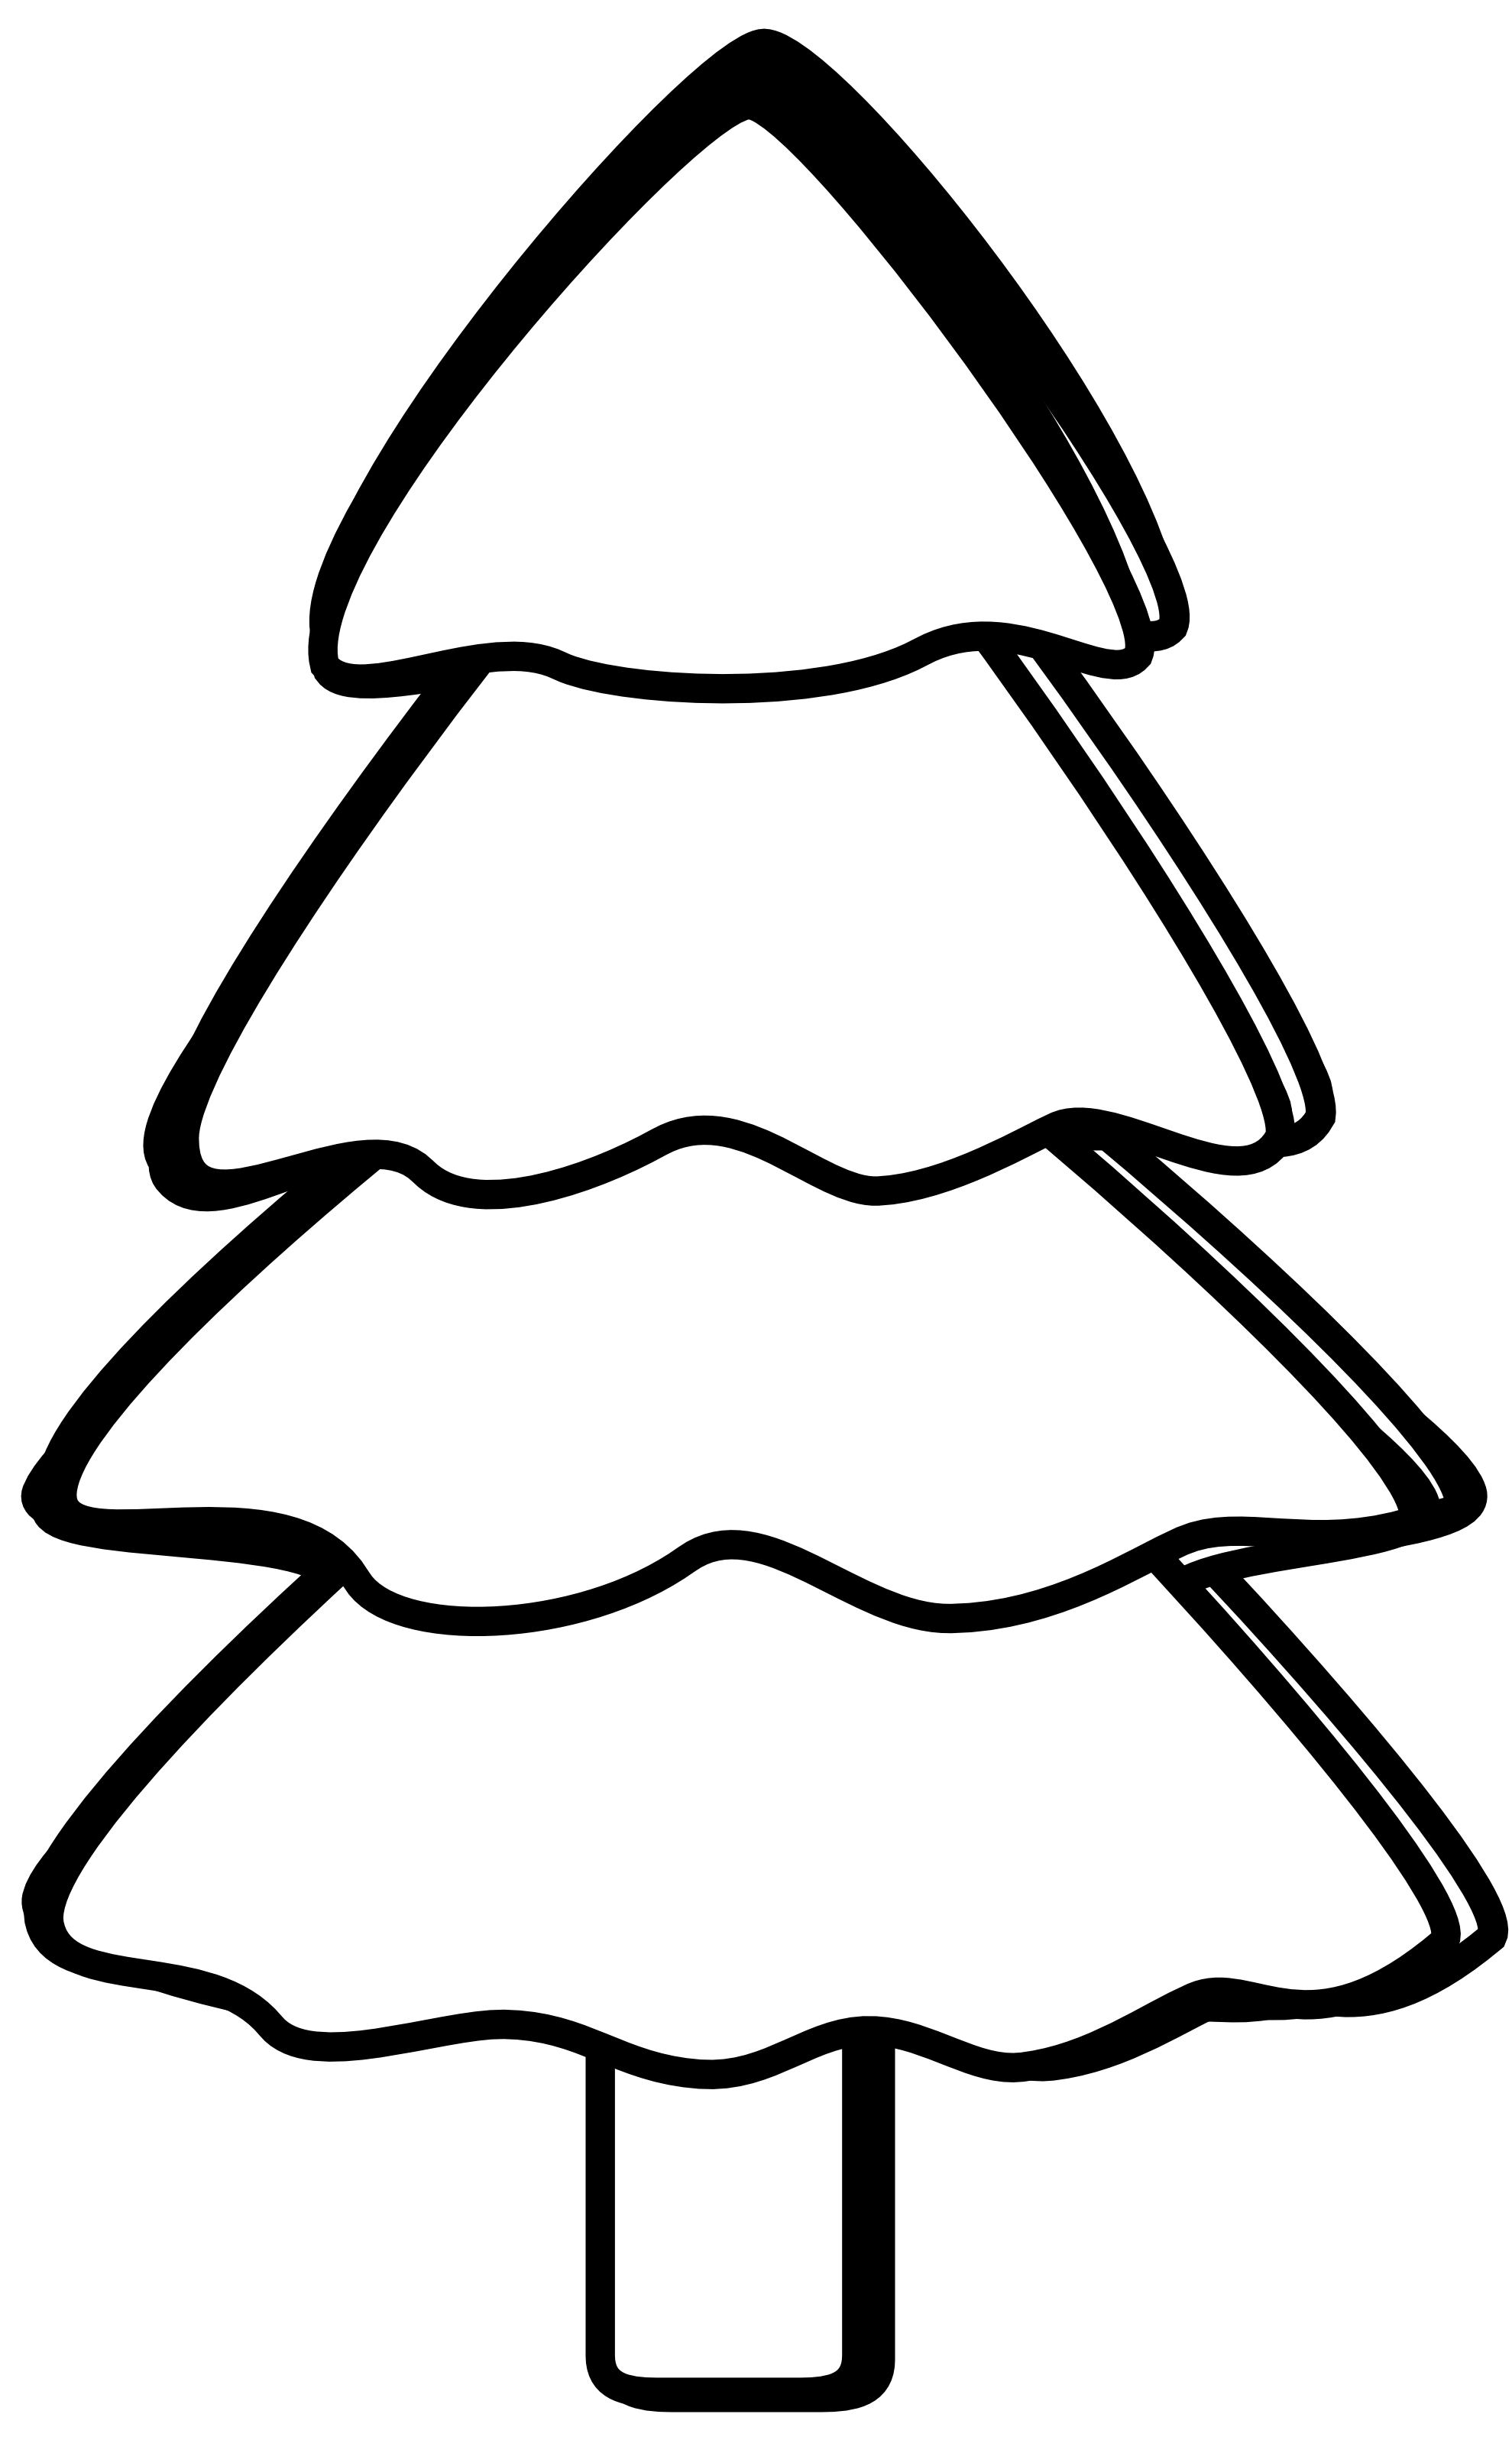 Pine tree clip art black and white 2